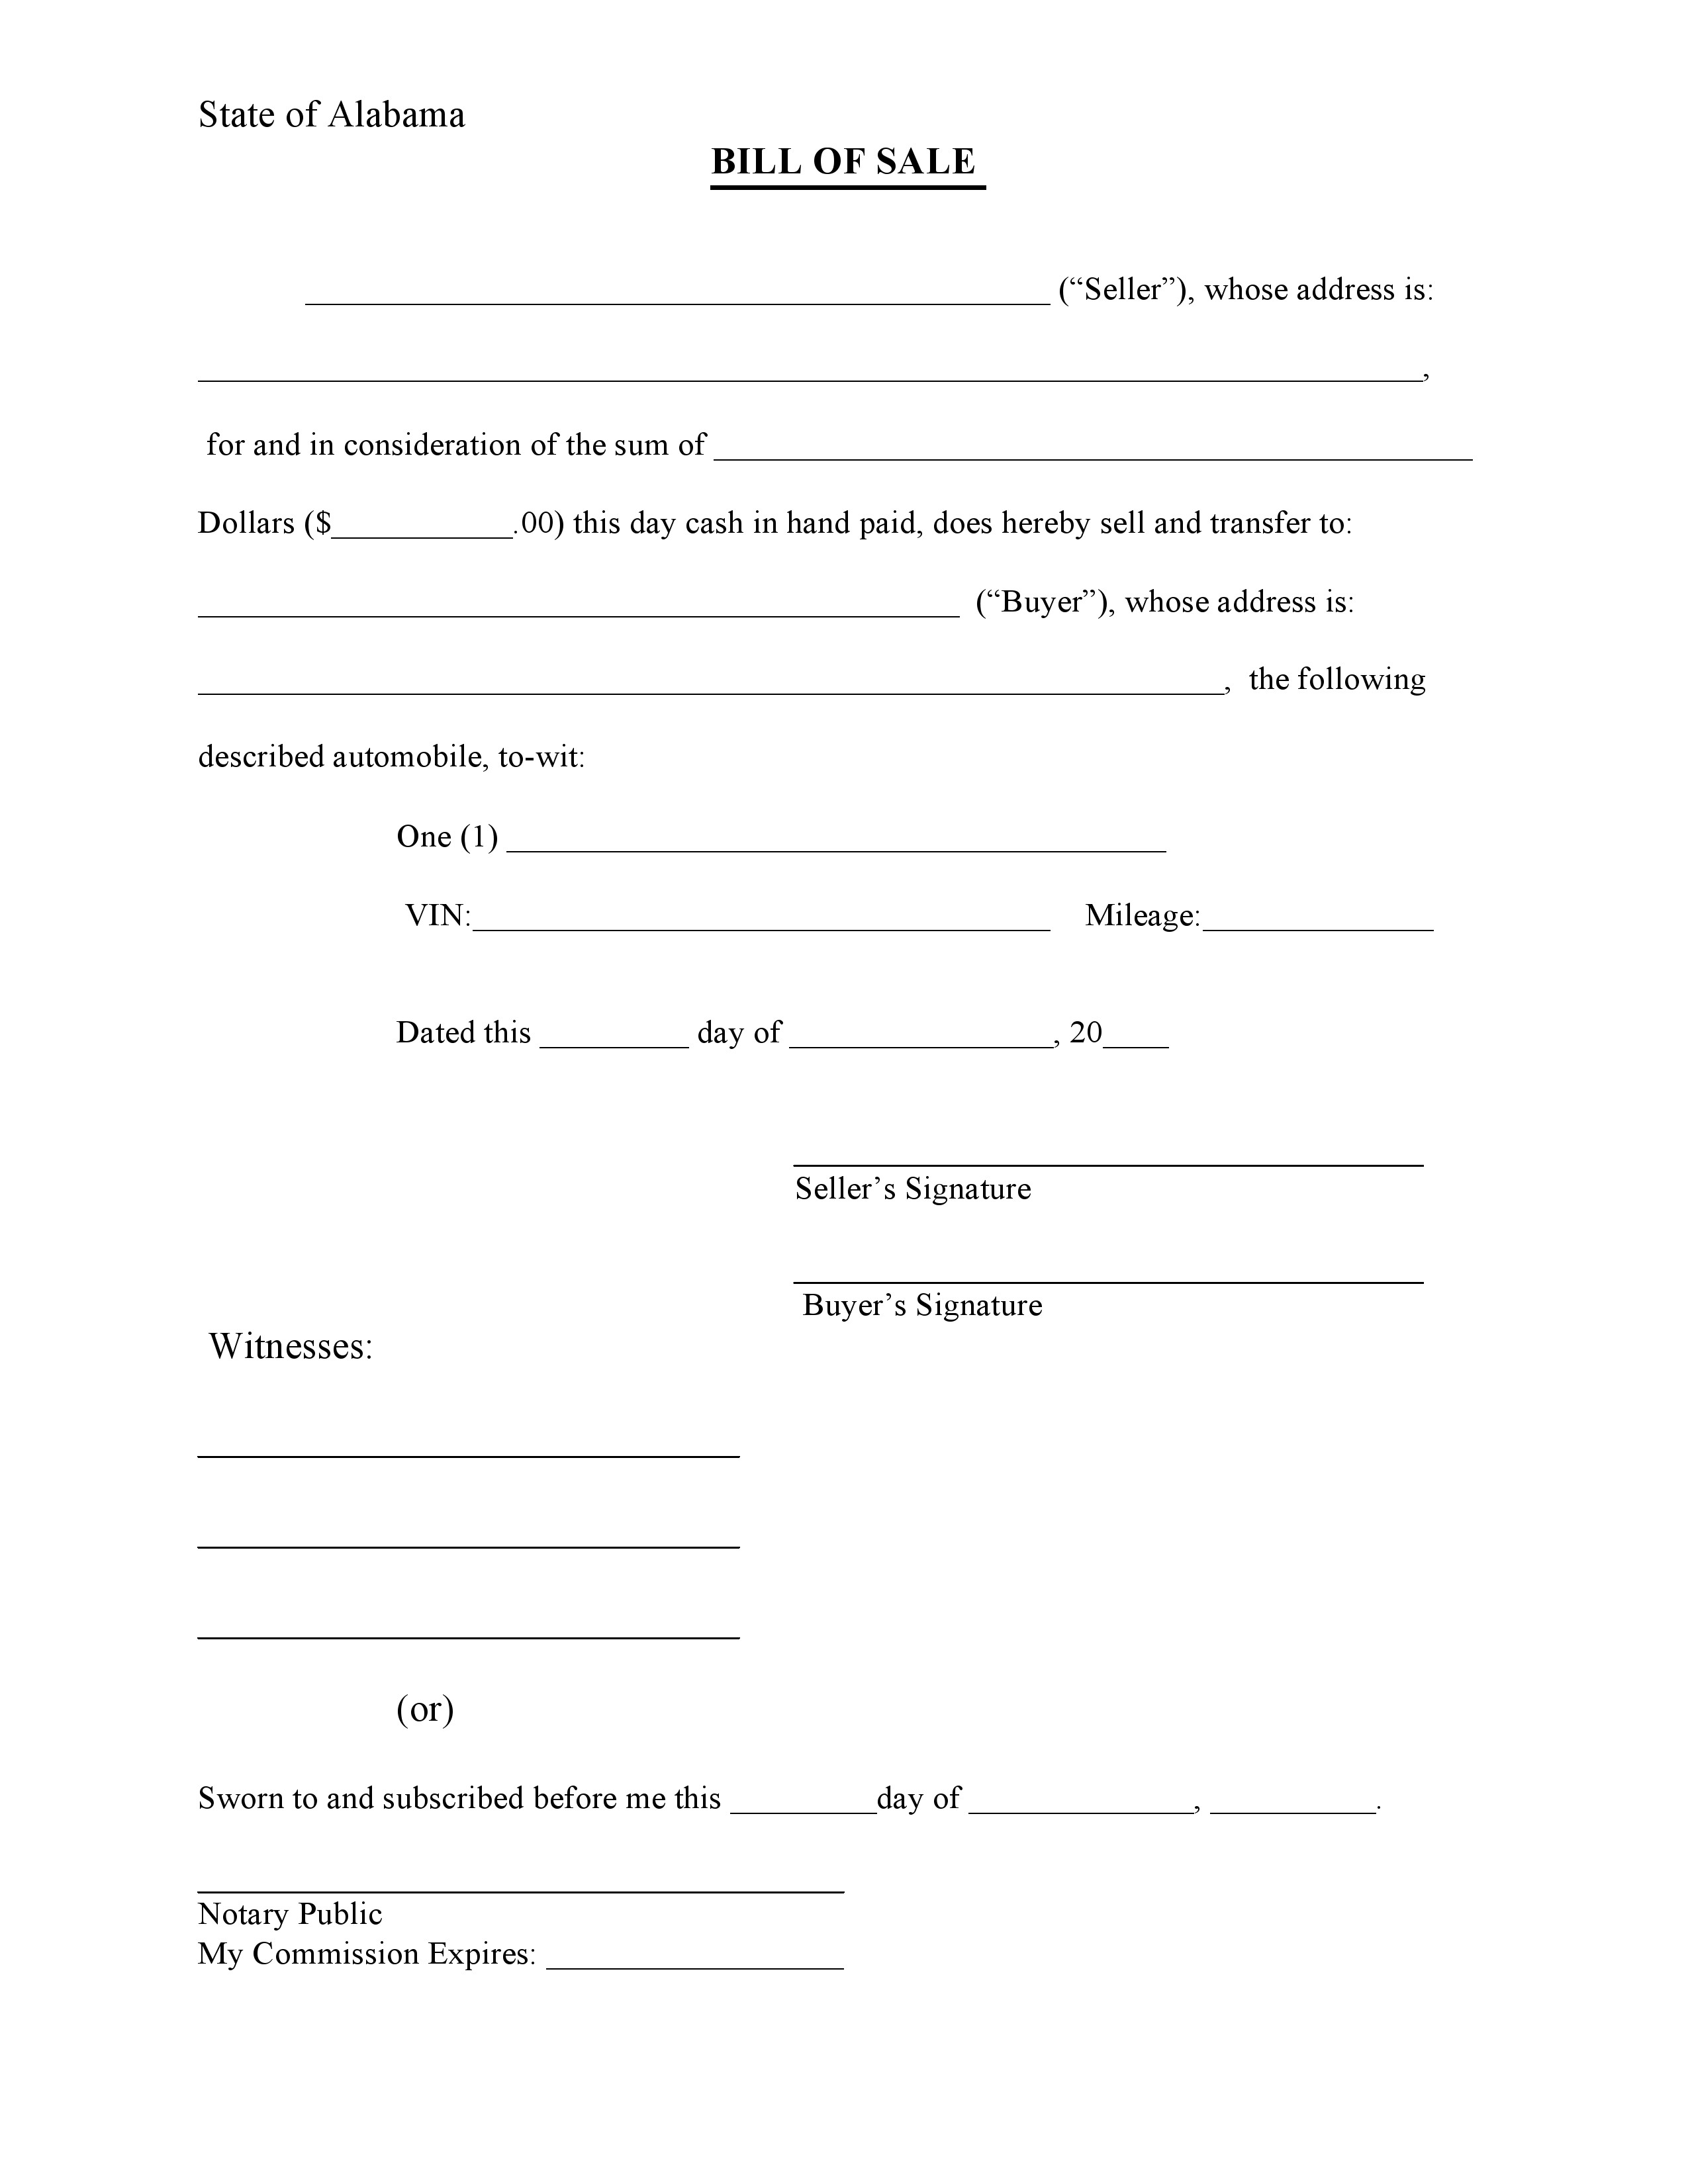 free alabama bill of sale form pdf docx